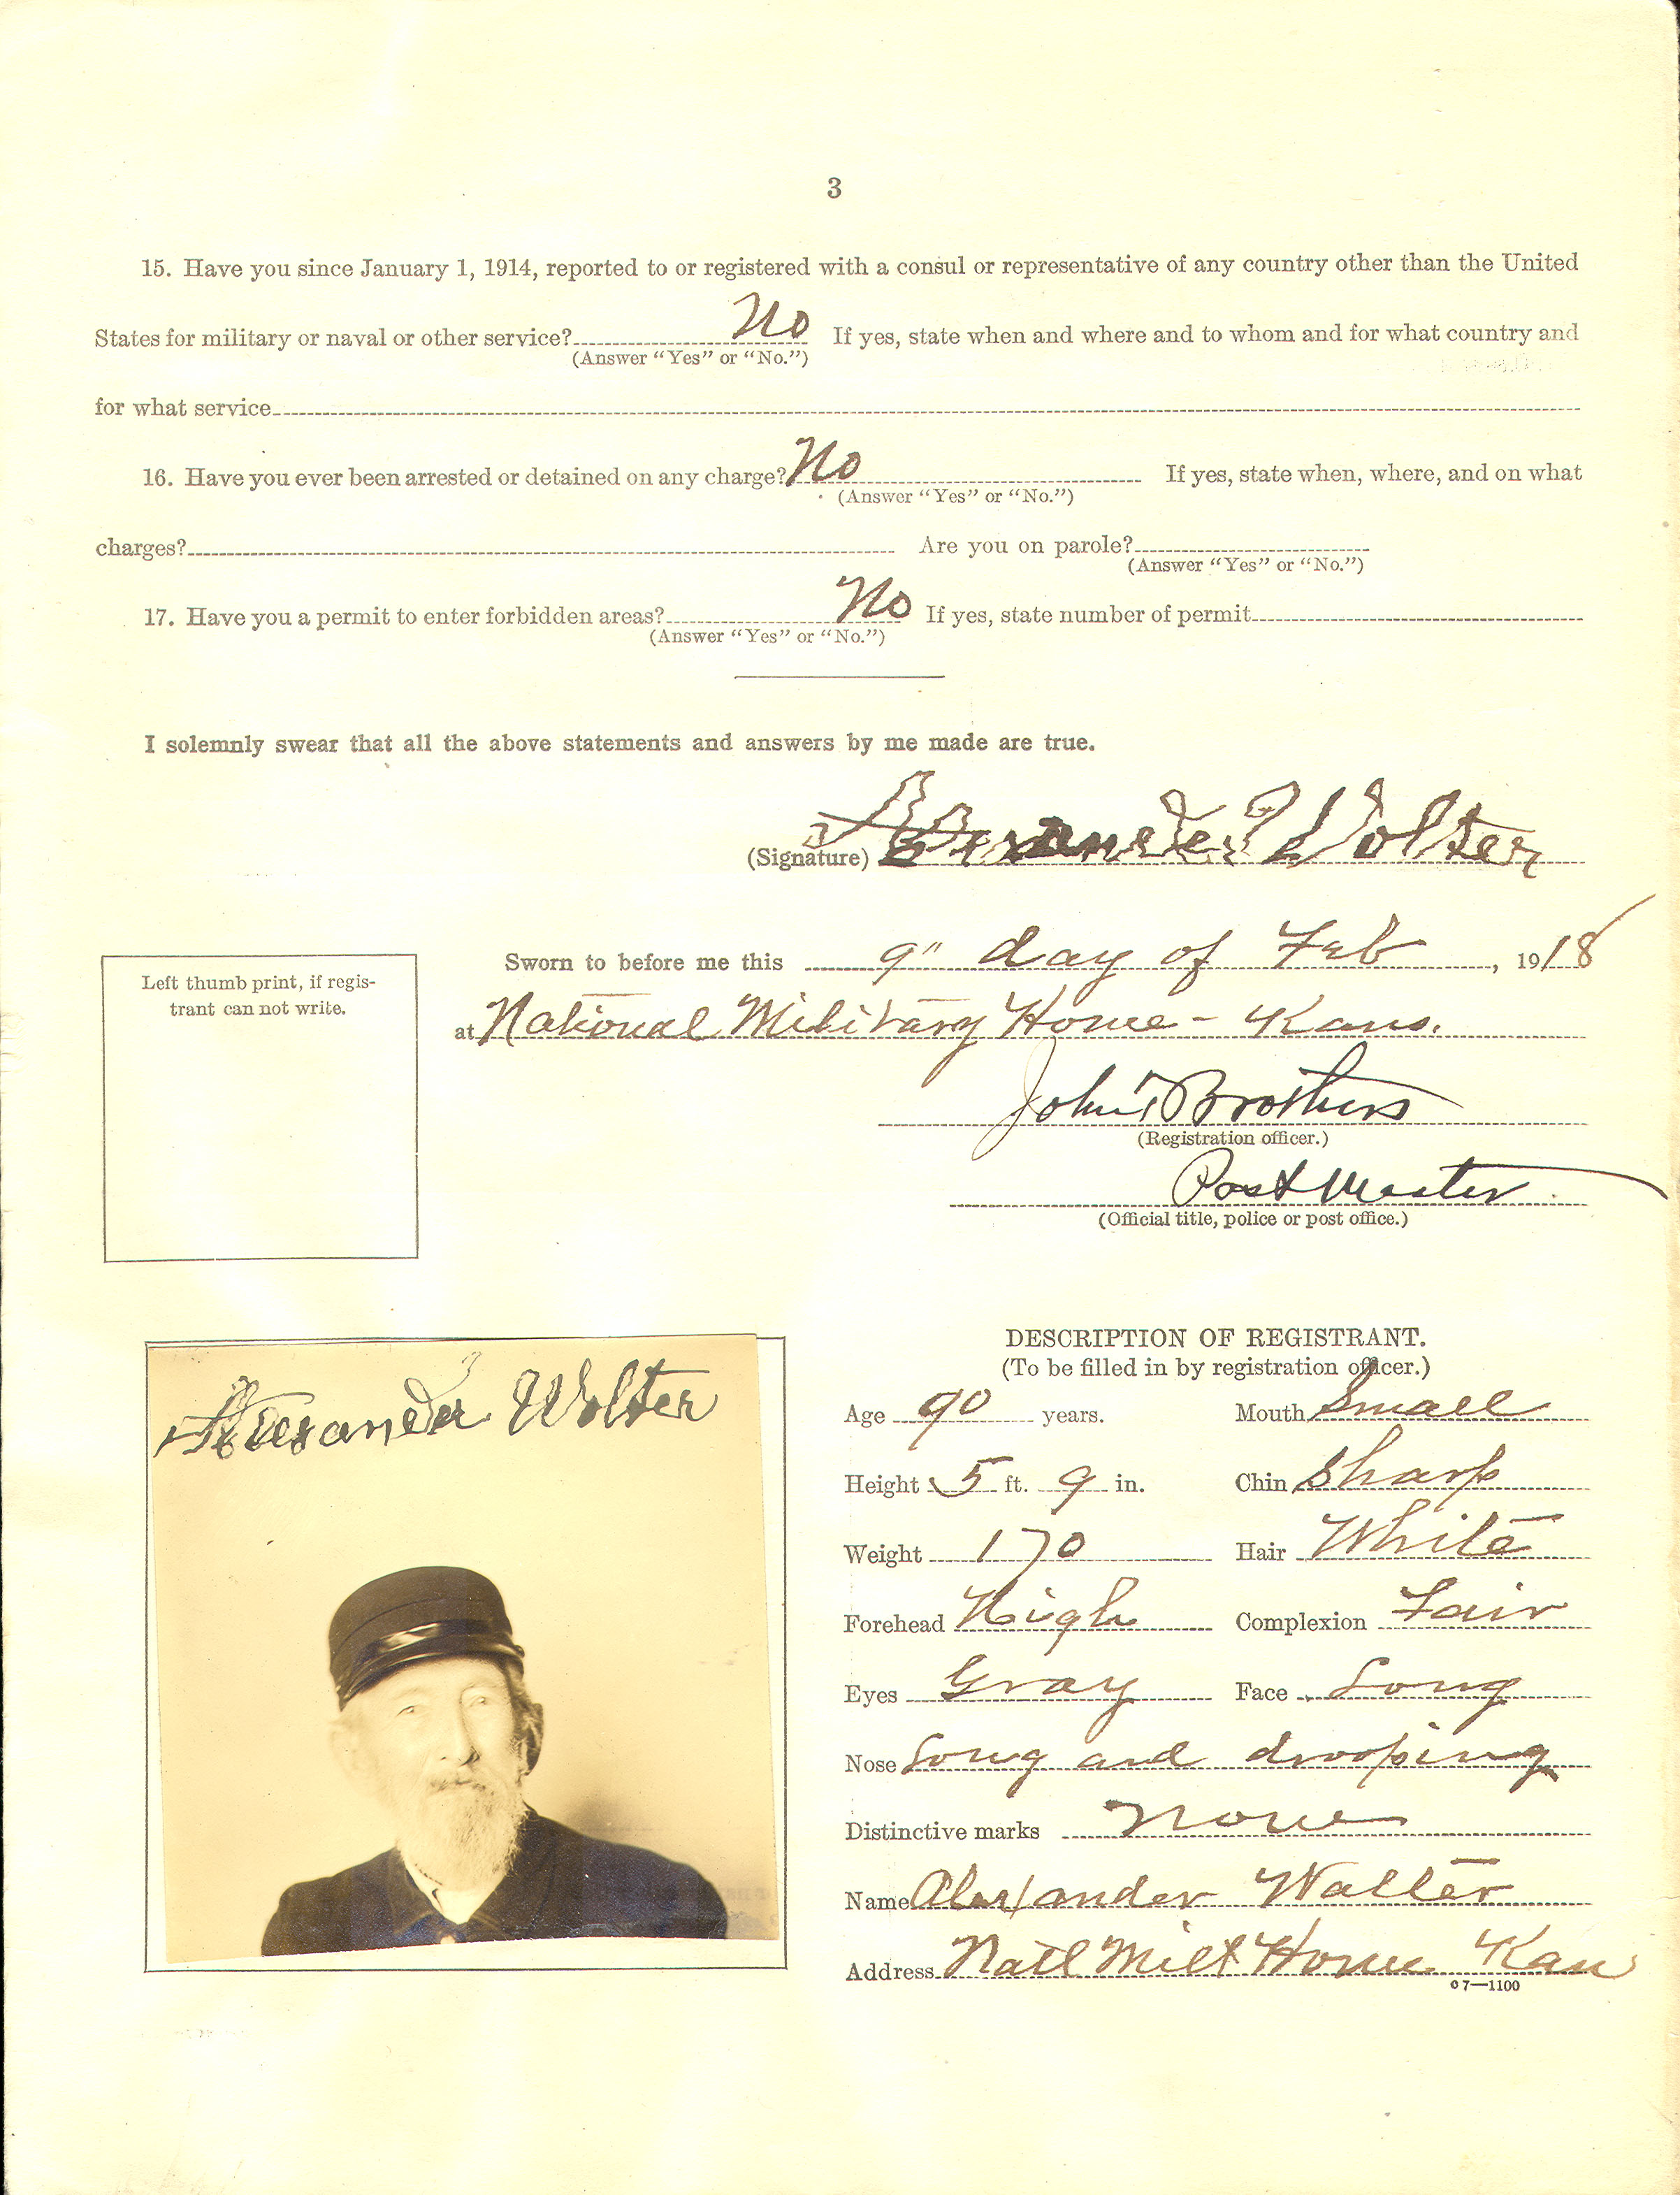 Alexander Walter was born May 18,1828, in Hanover, Germany. He was also a Civil War veteran who lived in the National Military Home in Leavenworth, KS. He had to fill out this registration form in 1918. (Page three of registration form, National Archives at Kansas City)